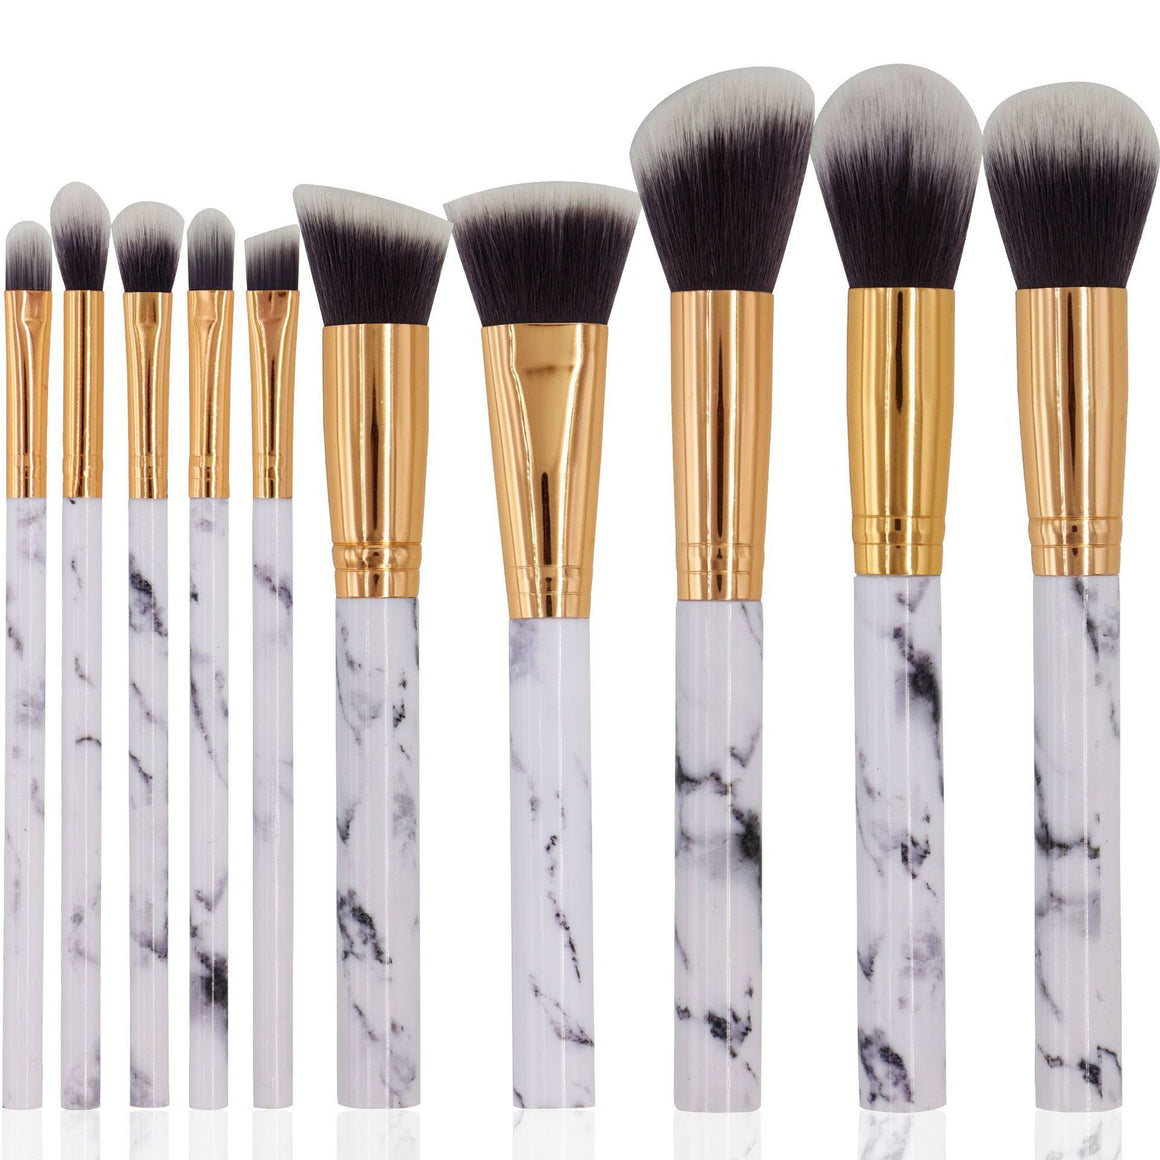 Makeup Brush Set, Face Eyeliner Blush Contour Foundation Cosmetic Brushes for Powder Liquid Cream p3577Default TitleBuy mate